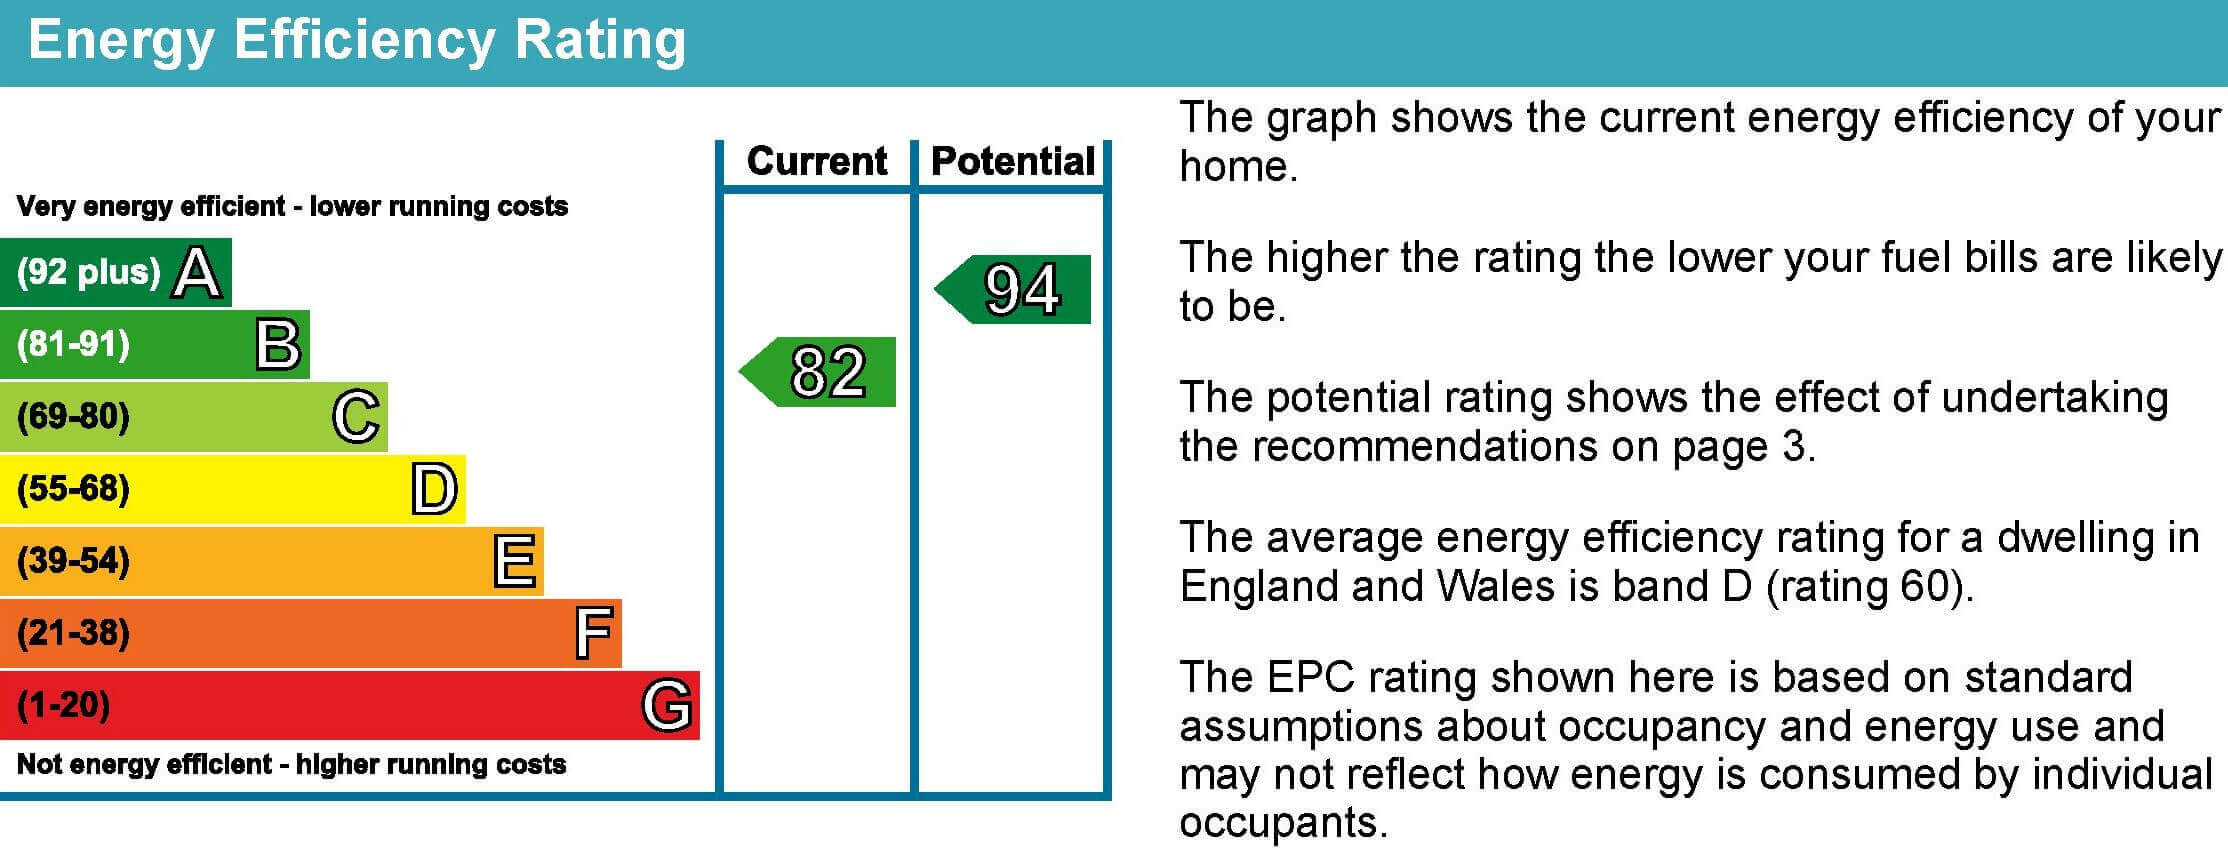 Energy Performance Certificate explained: energy efficiency rating